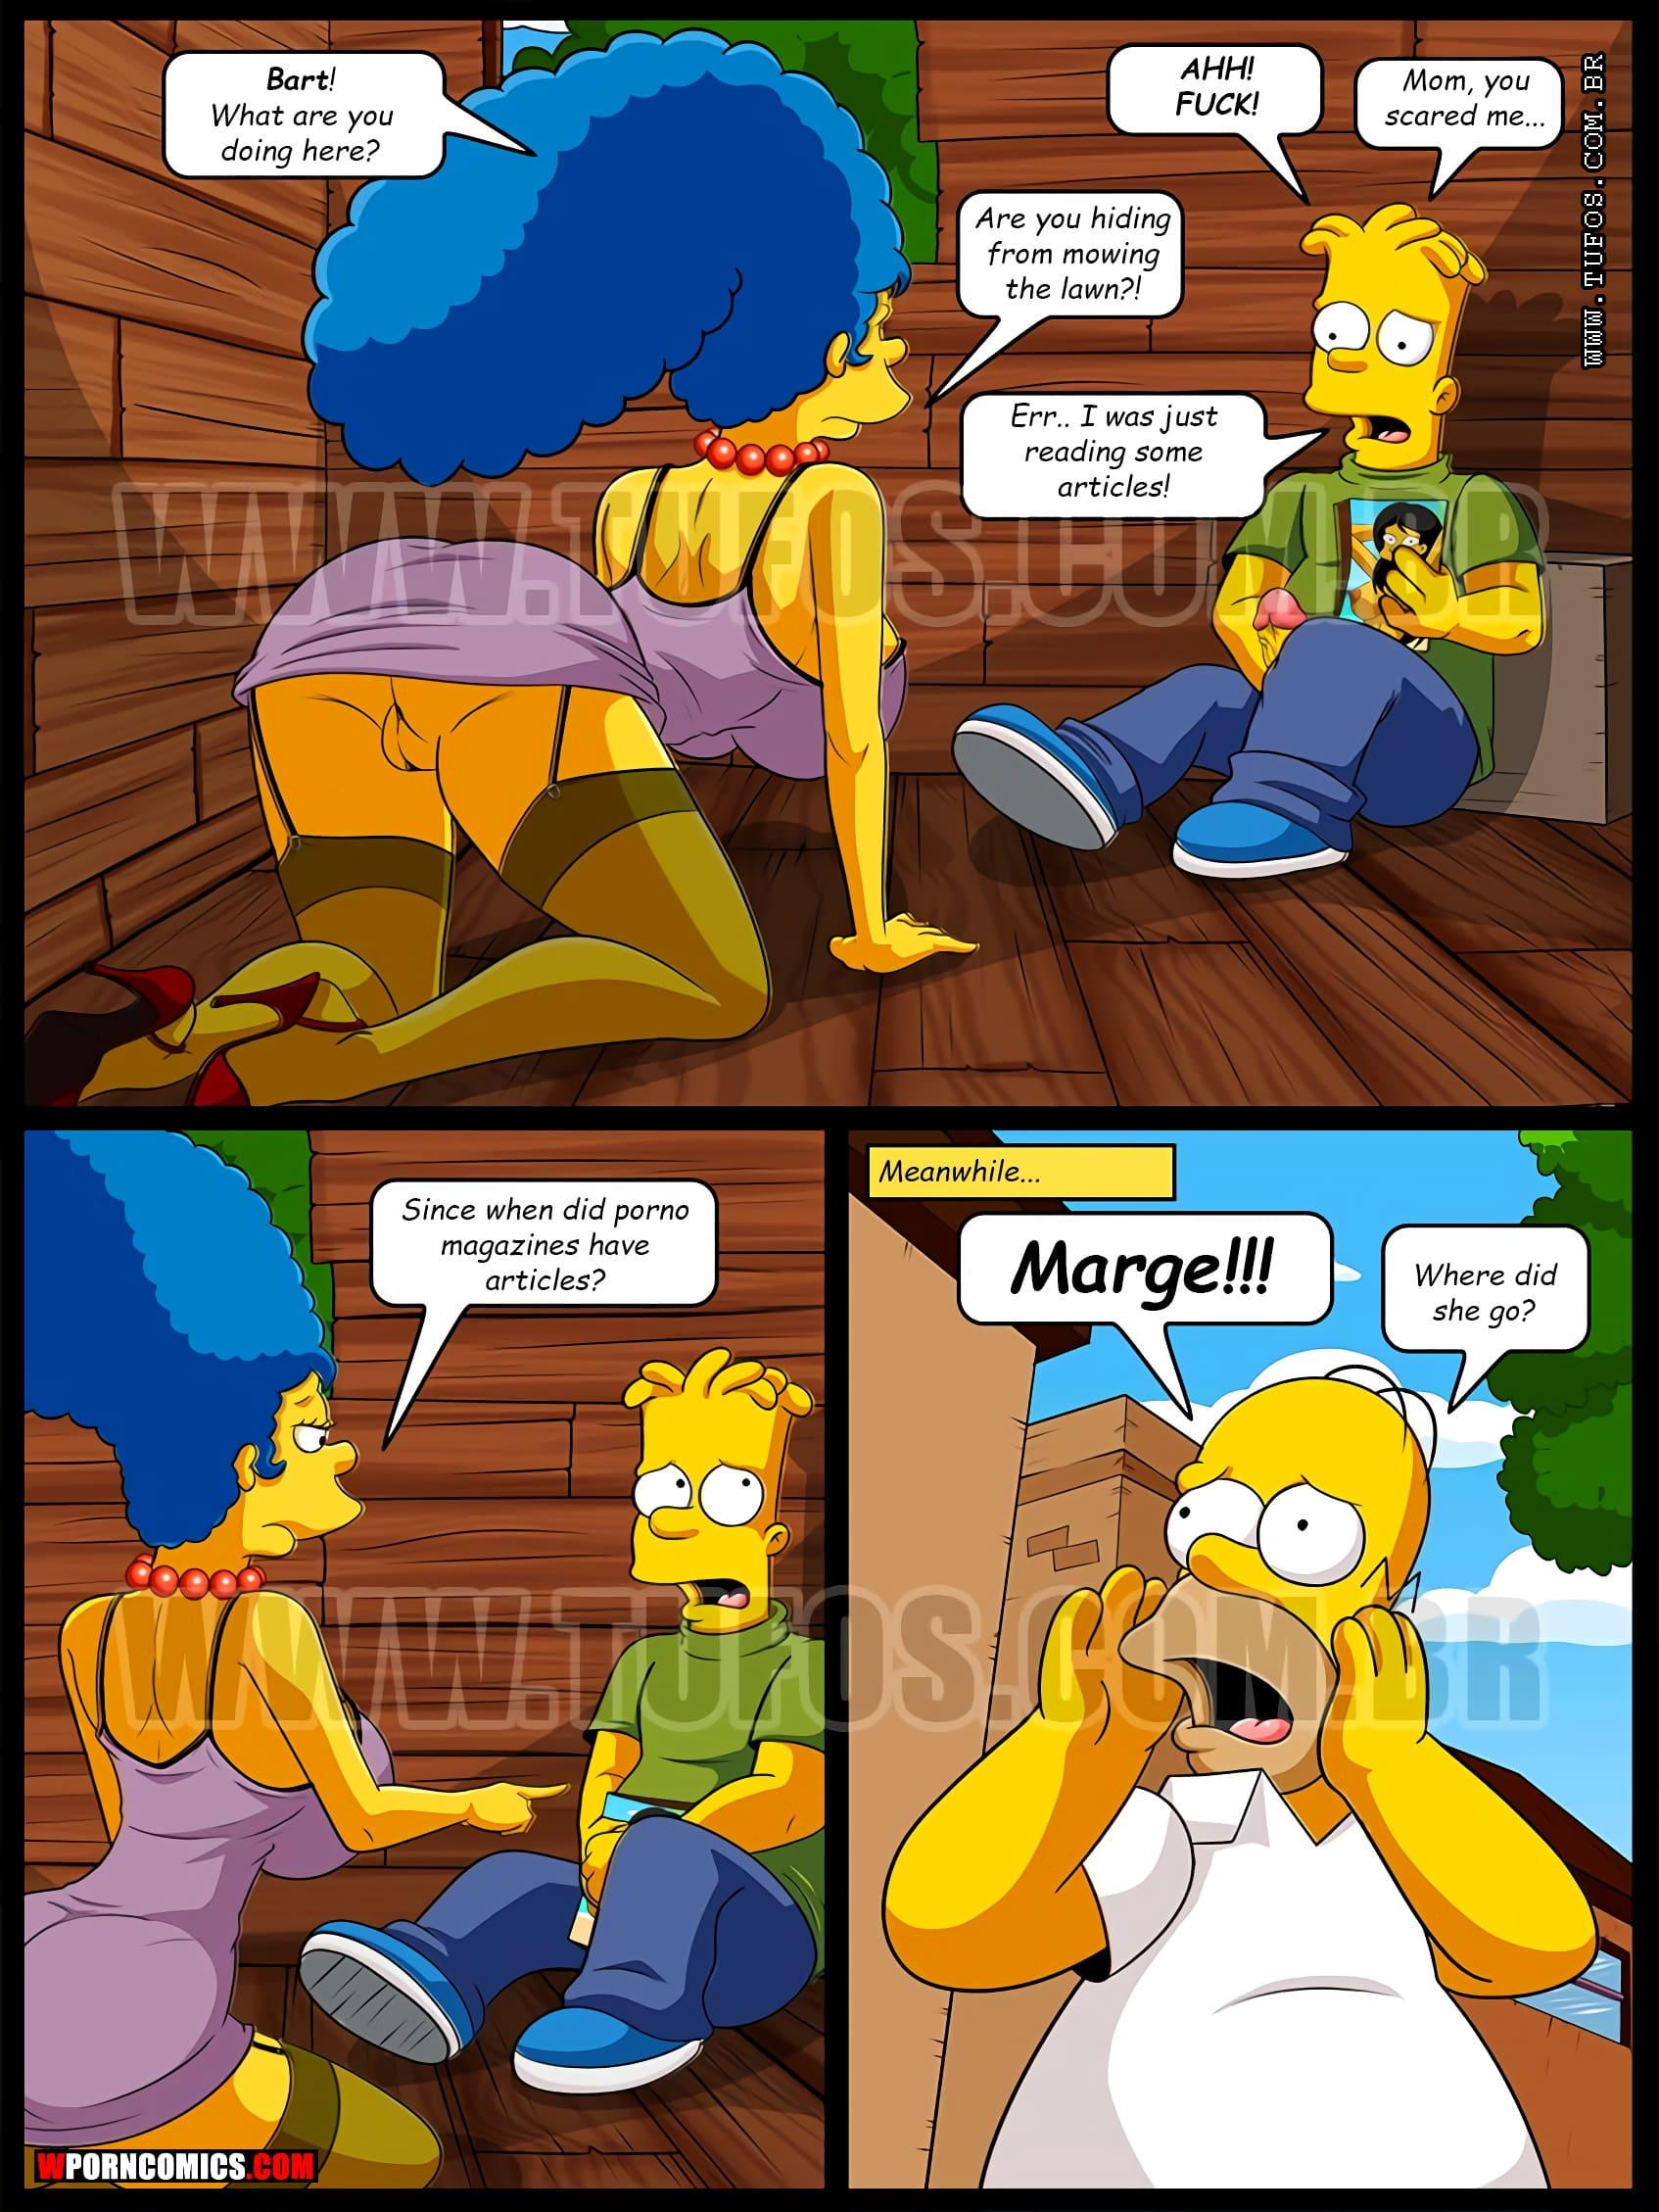 porn-comic-simpsons-part-12-fucking-in-the-treehouse-2020-03-19/porn-comic-simpsons-part-12-fucking-in-the-treehouse-2020-03-19-32848.jpg